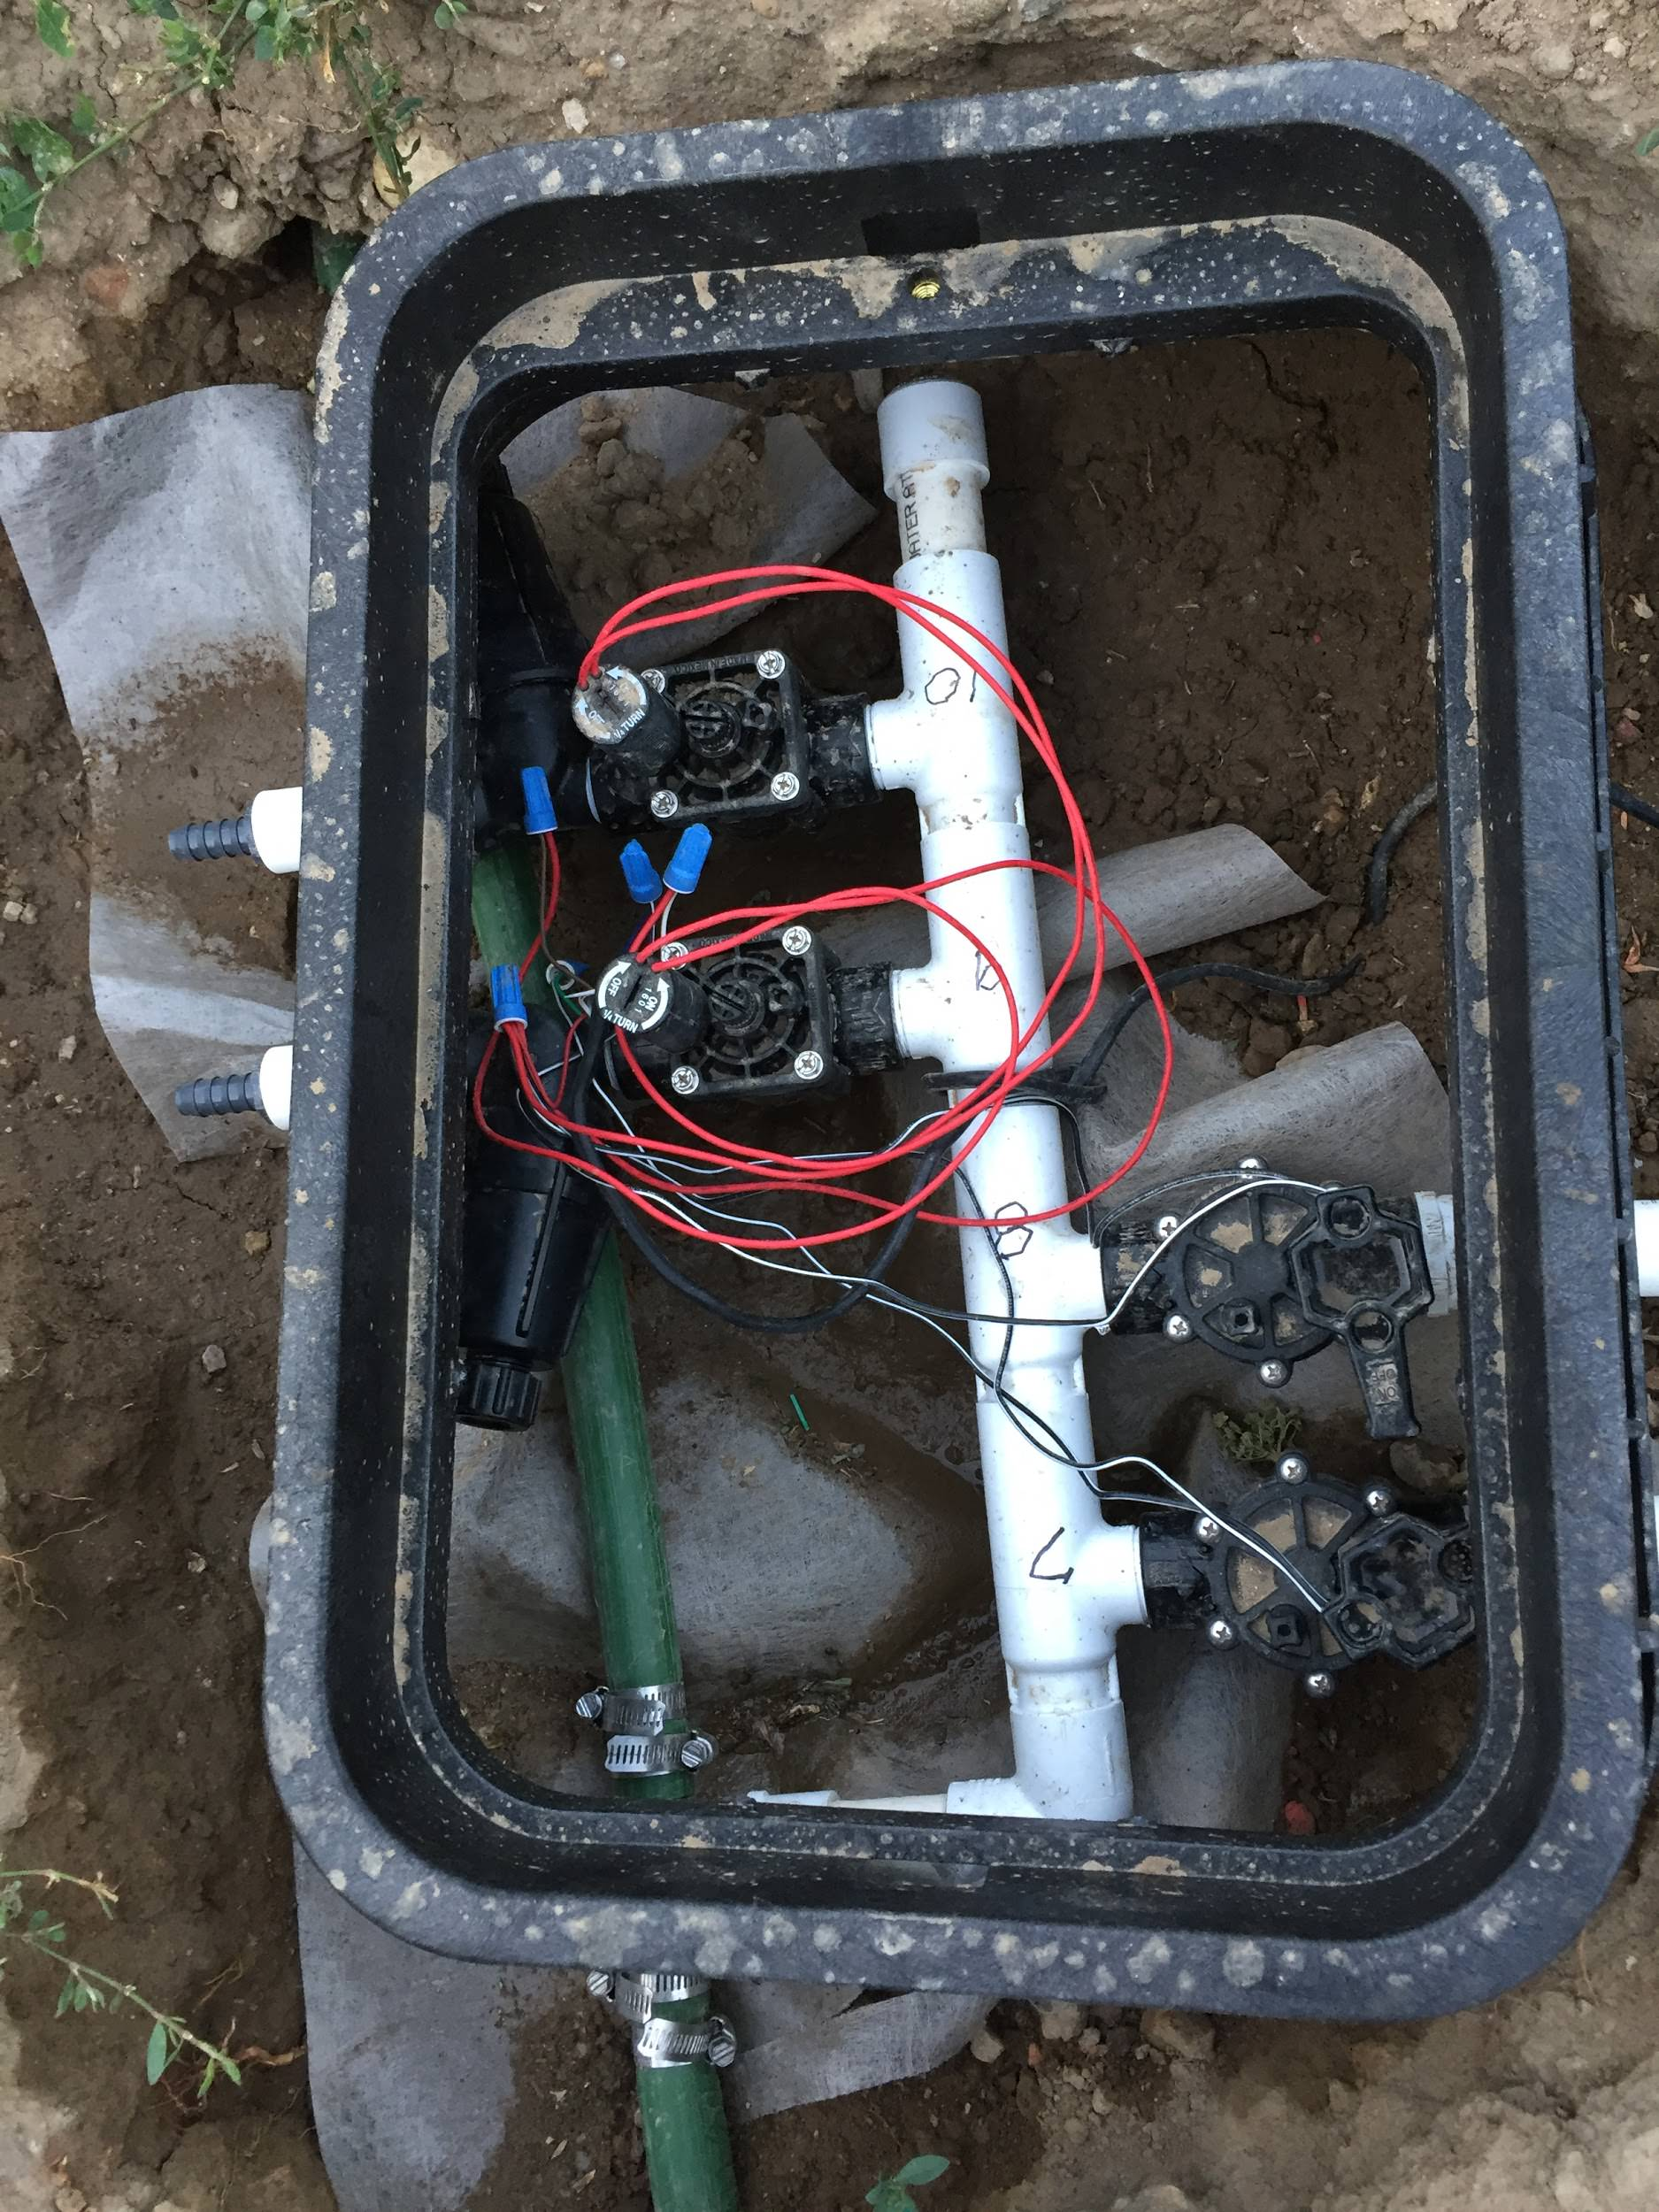 How to Install a Backyard Sprinkler System on a Timer (6 Steps) Sprinkler Timer Wiring Diagram Up on grasslin timer wiring diagram, water heater timer wiring diagram, sprinkler rain bird wiring-diagram, up down counter circuit diagram, photocell timer wiring diagram, irrigation timer wiring diagram, hot tub timer wiring diagram, sprinkler valves, spa timer wiring diagram, electrical timer wiring diagram, sprinkler timer system, pool timer wiring diagram, timer switch wiring diagram, irrigation valve diagram, digital timer wiring diagram, lawn sprinkler diagram,